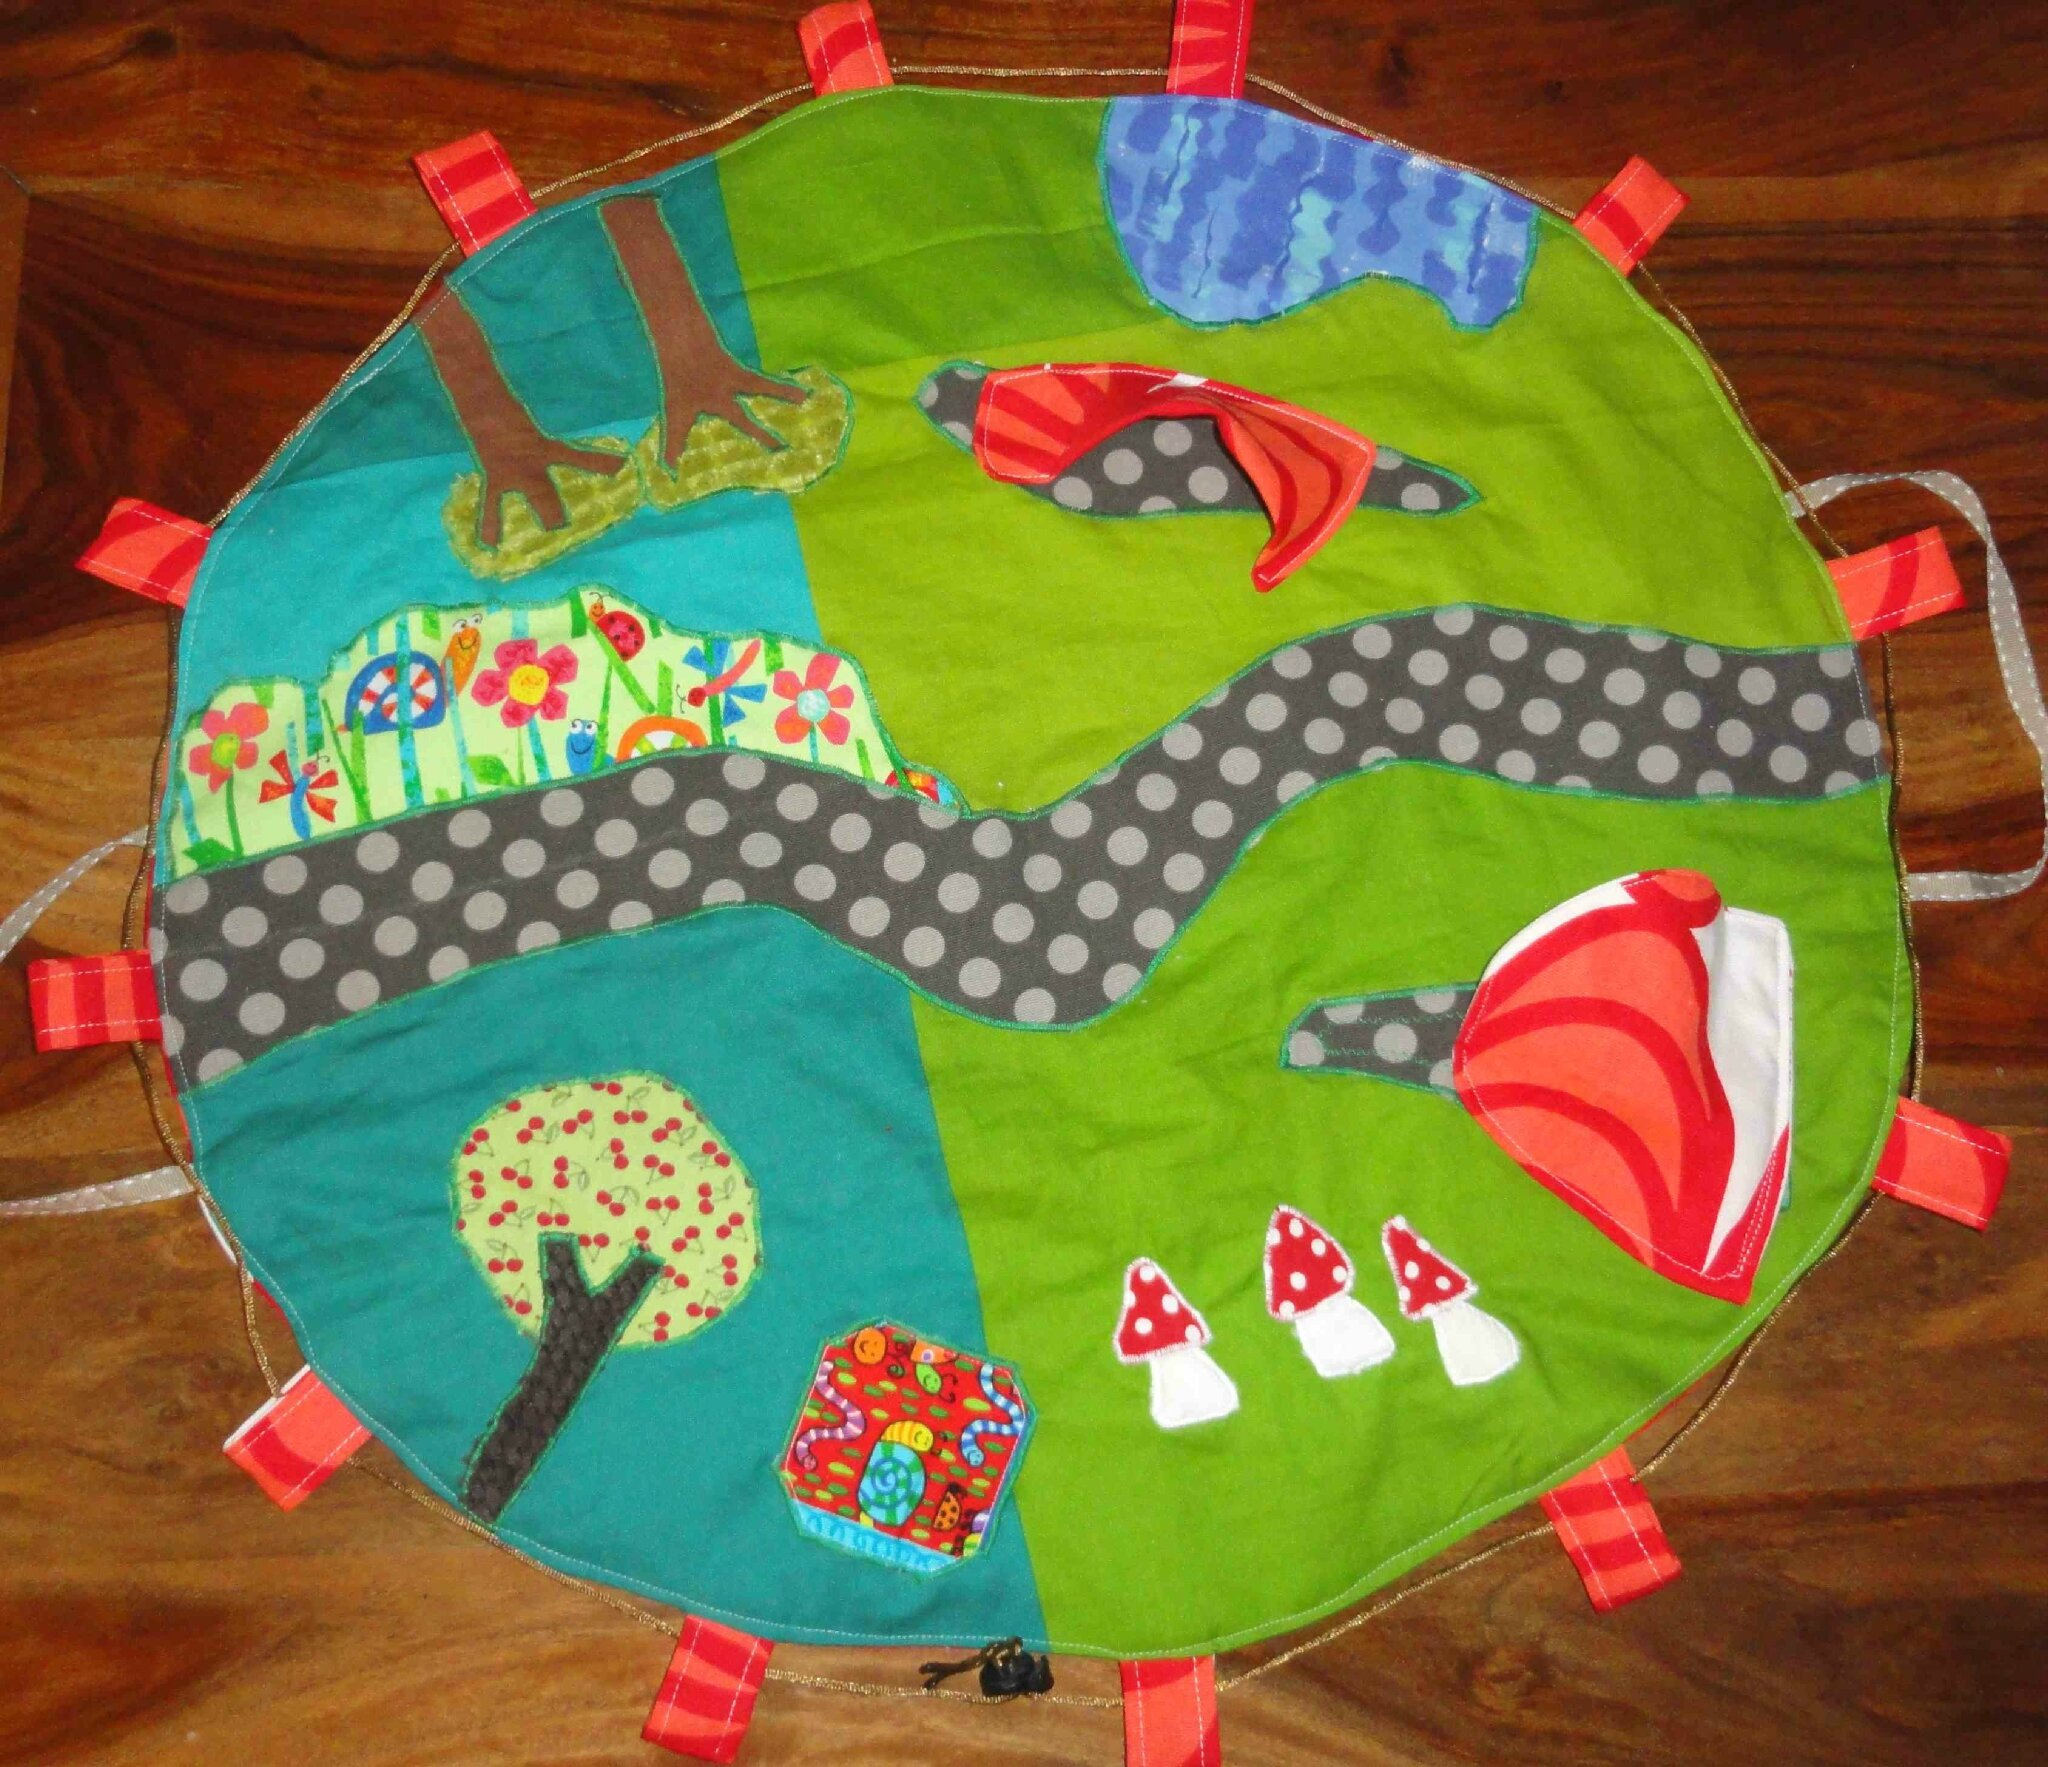 tapis de jeu en tissu foldingo fold and go fabric play mat ch m alias chauchaumamar. Black Bedroom Furniture Sets. Home Design Ideas